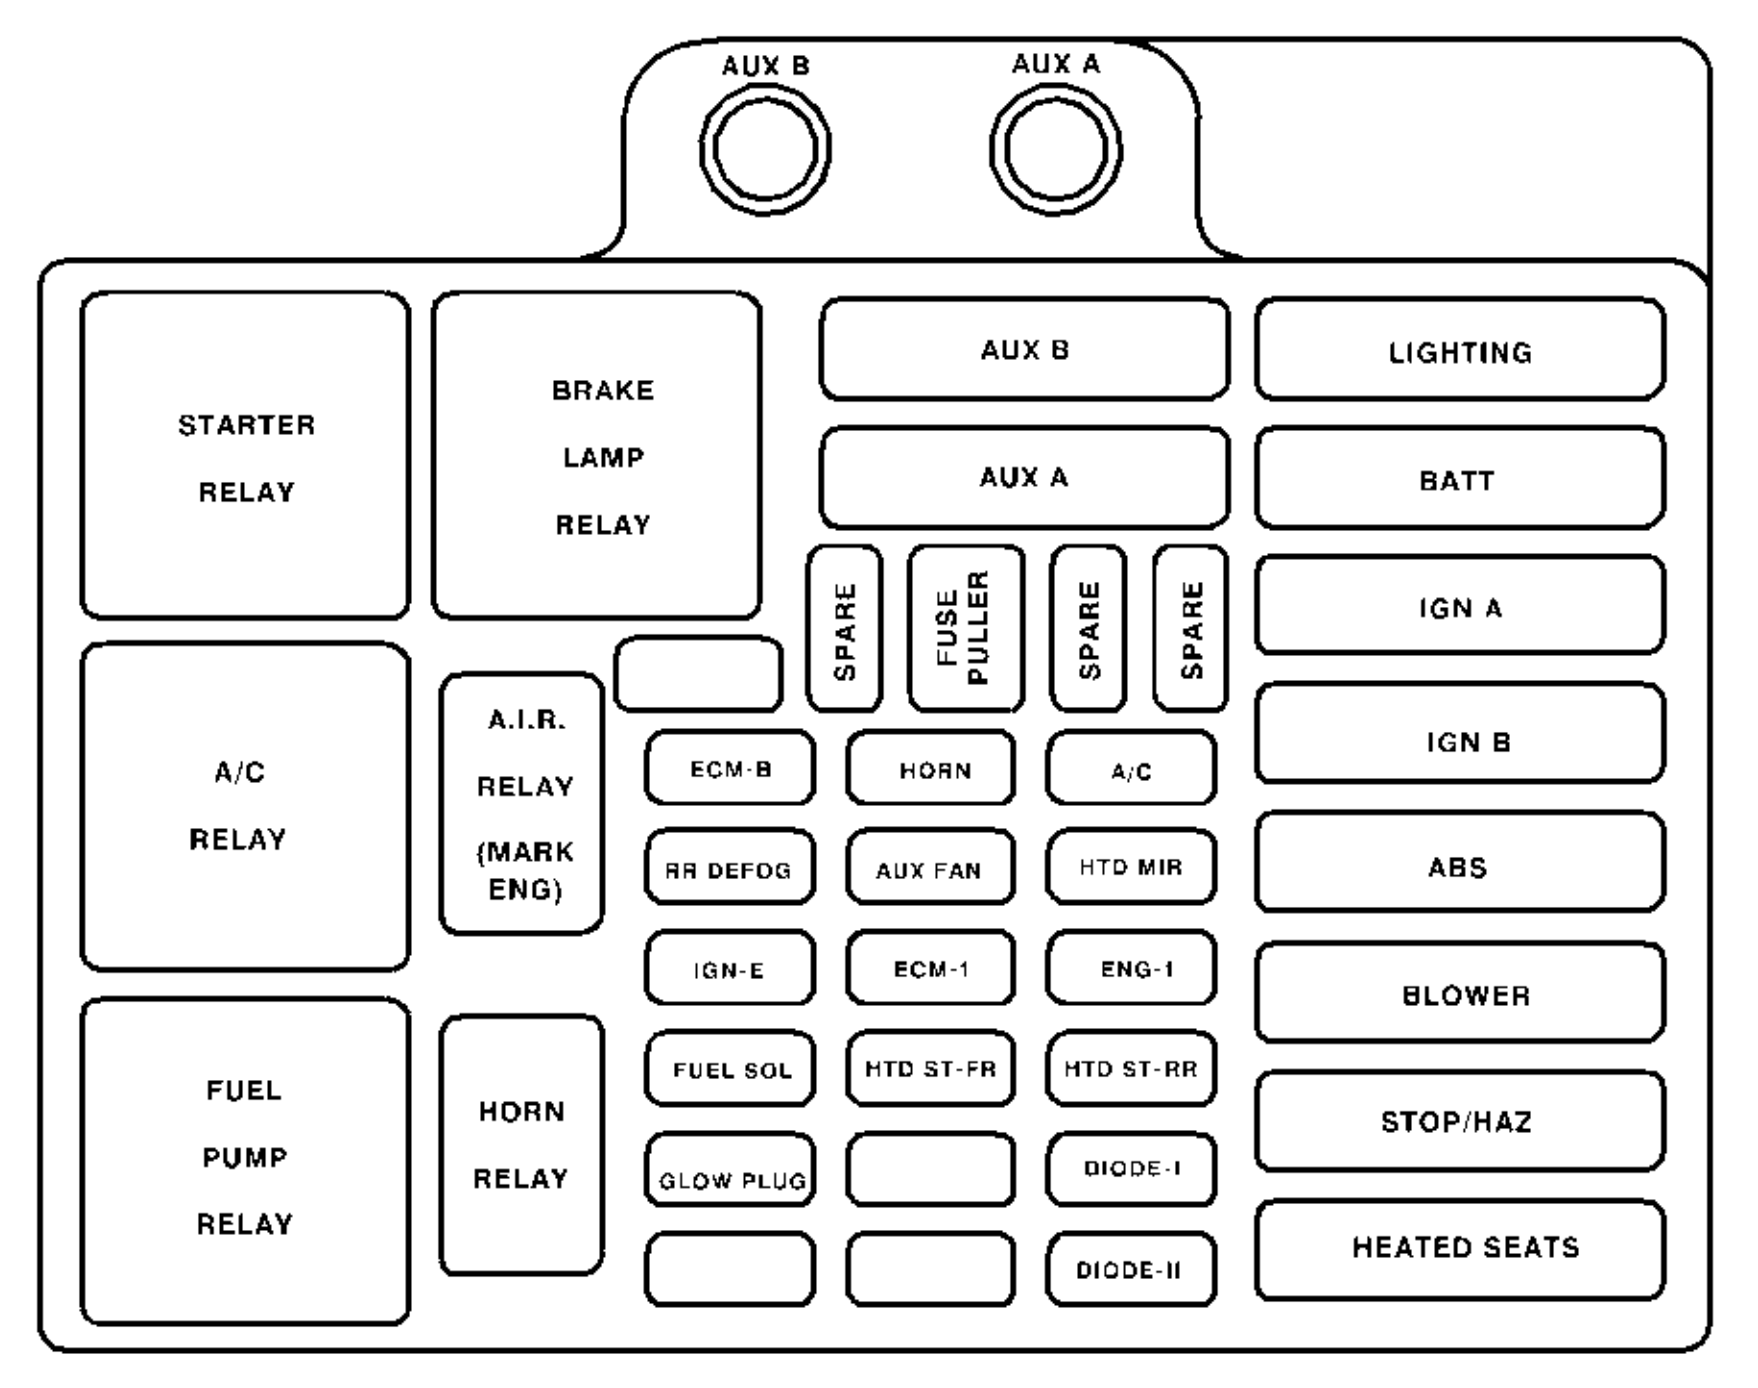 96 S10 Fuel Pump Relay Location. Parts. Wiring Diagram Images